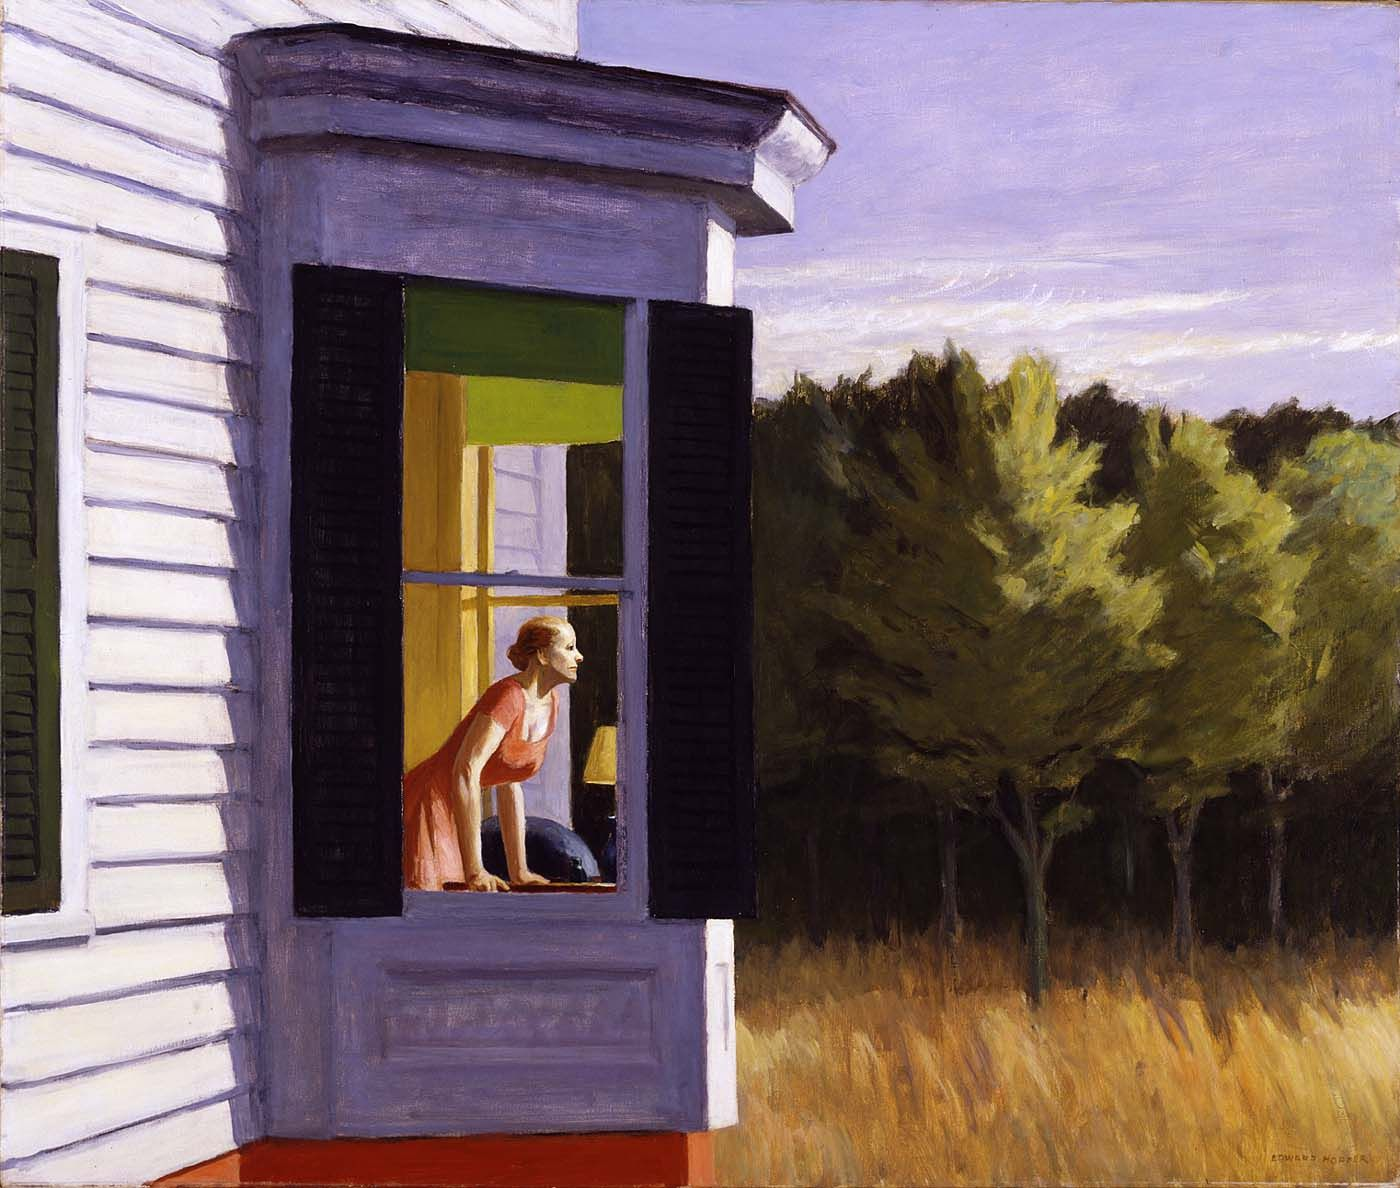 La Chambre A New York Edward Hopper Edward Hopper Art Hopper Fenêtre Peinture Window